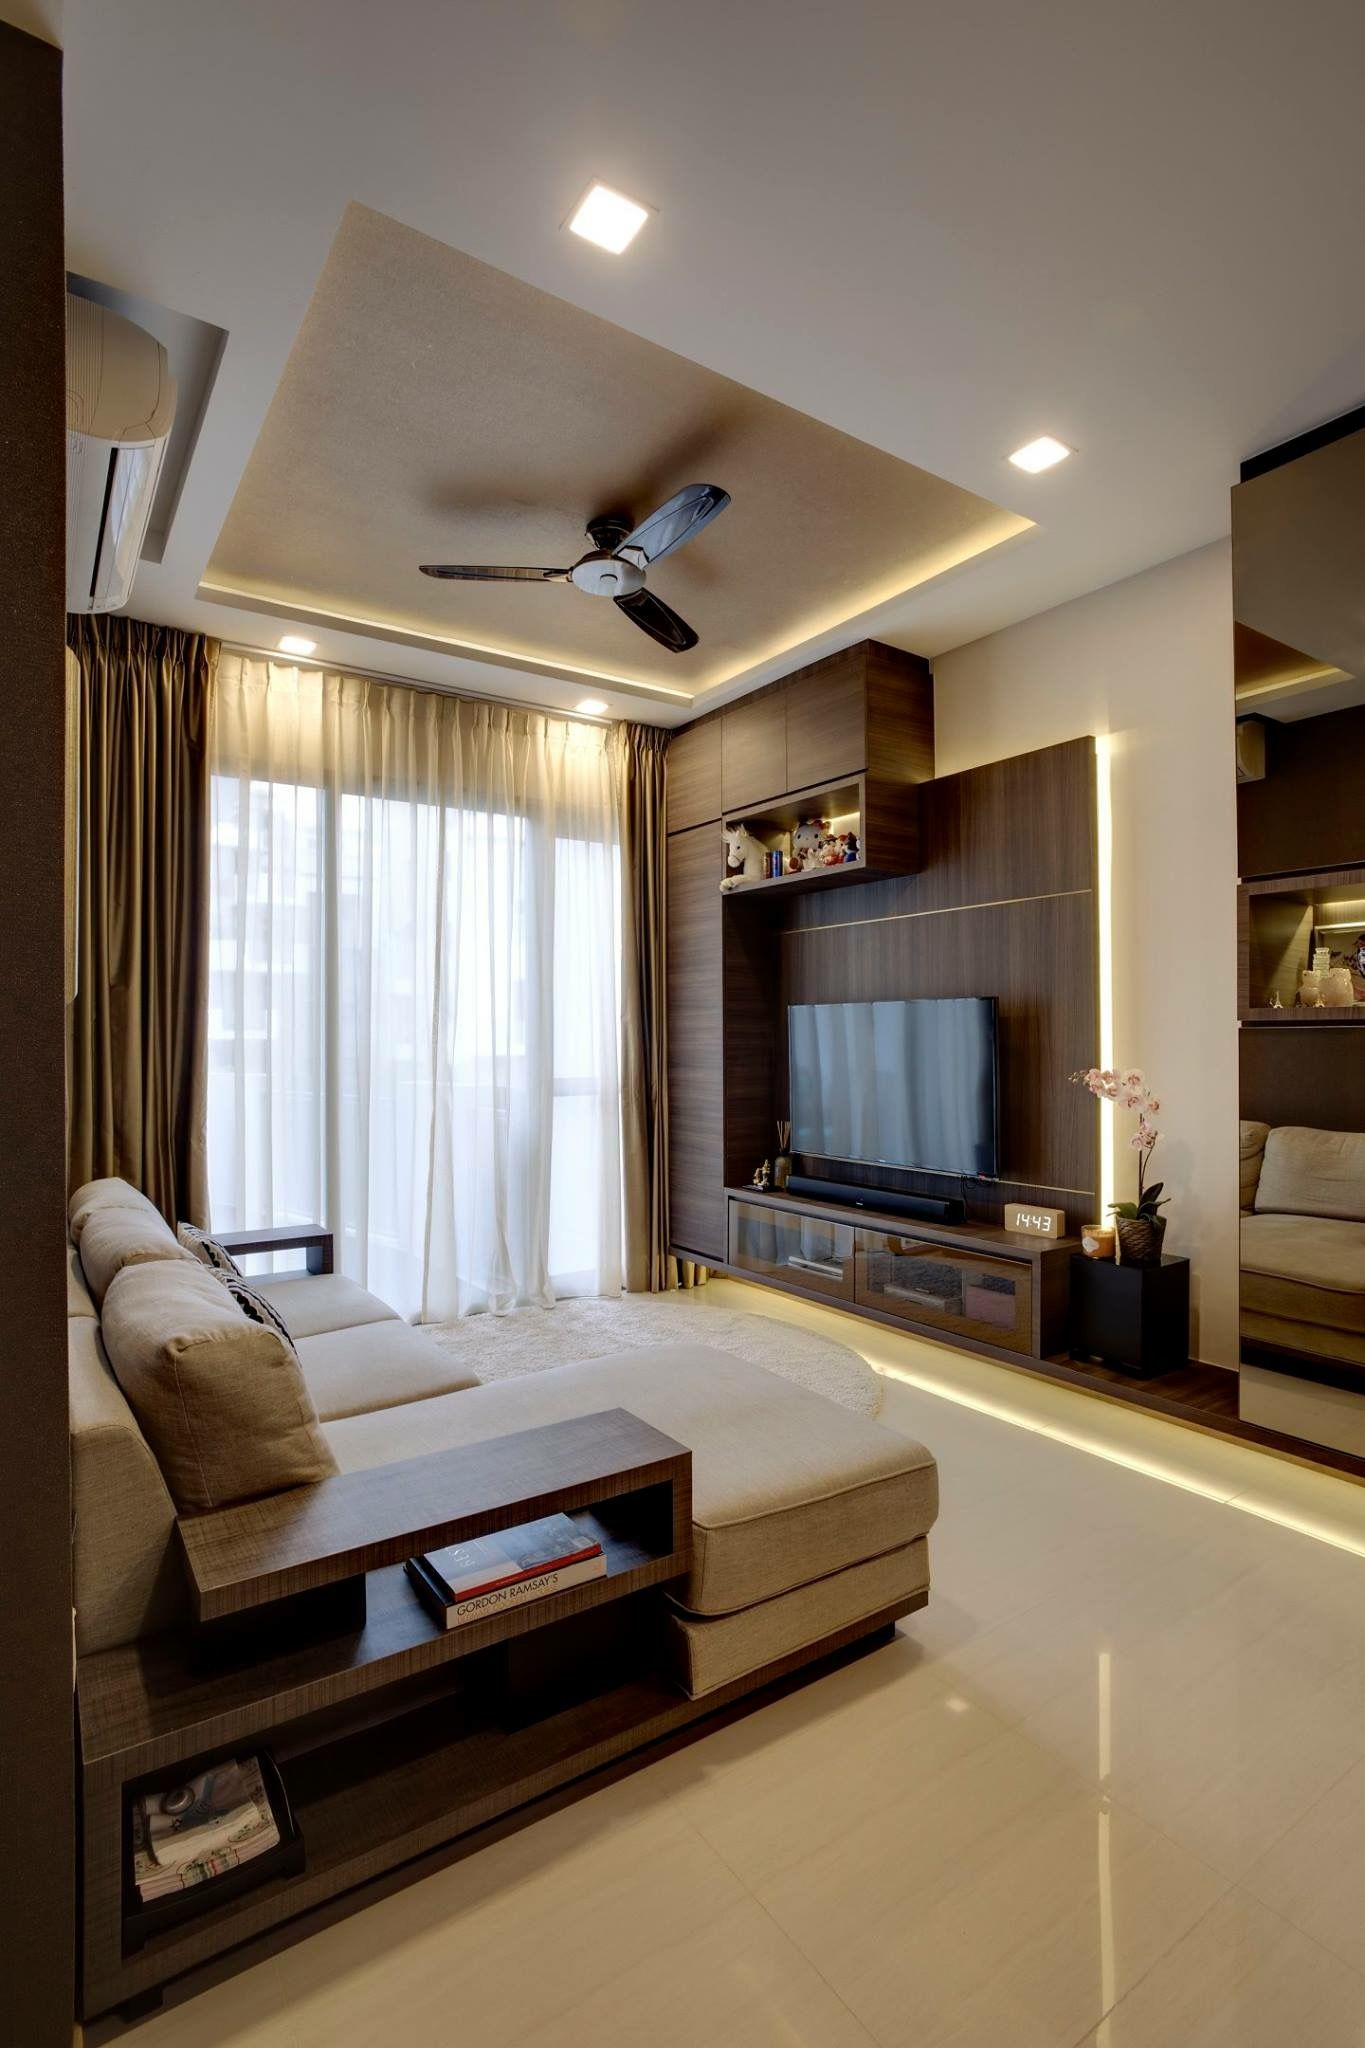 Sitting Room Interior Design: Sample For: 1) Lighting + Fan Placement 2) Ceiling Height